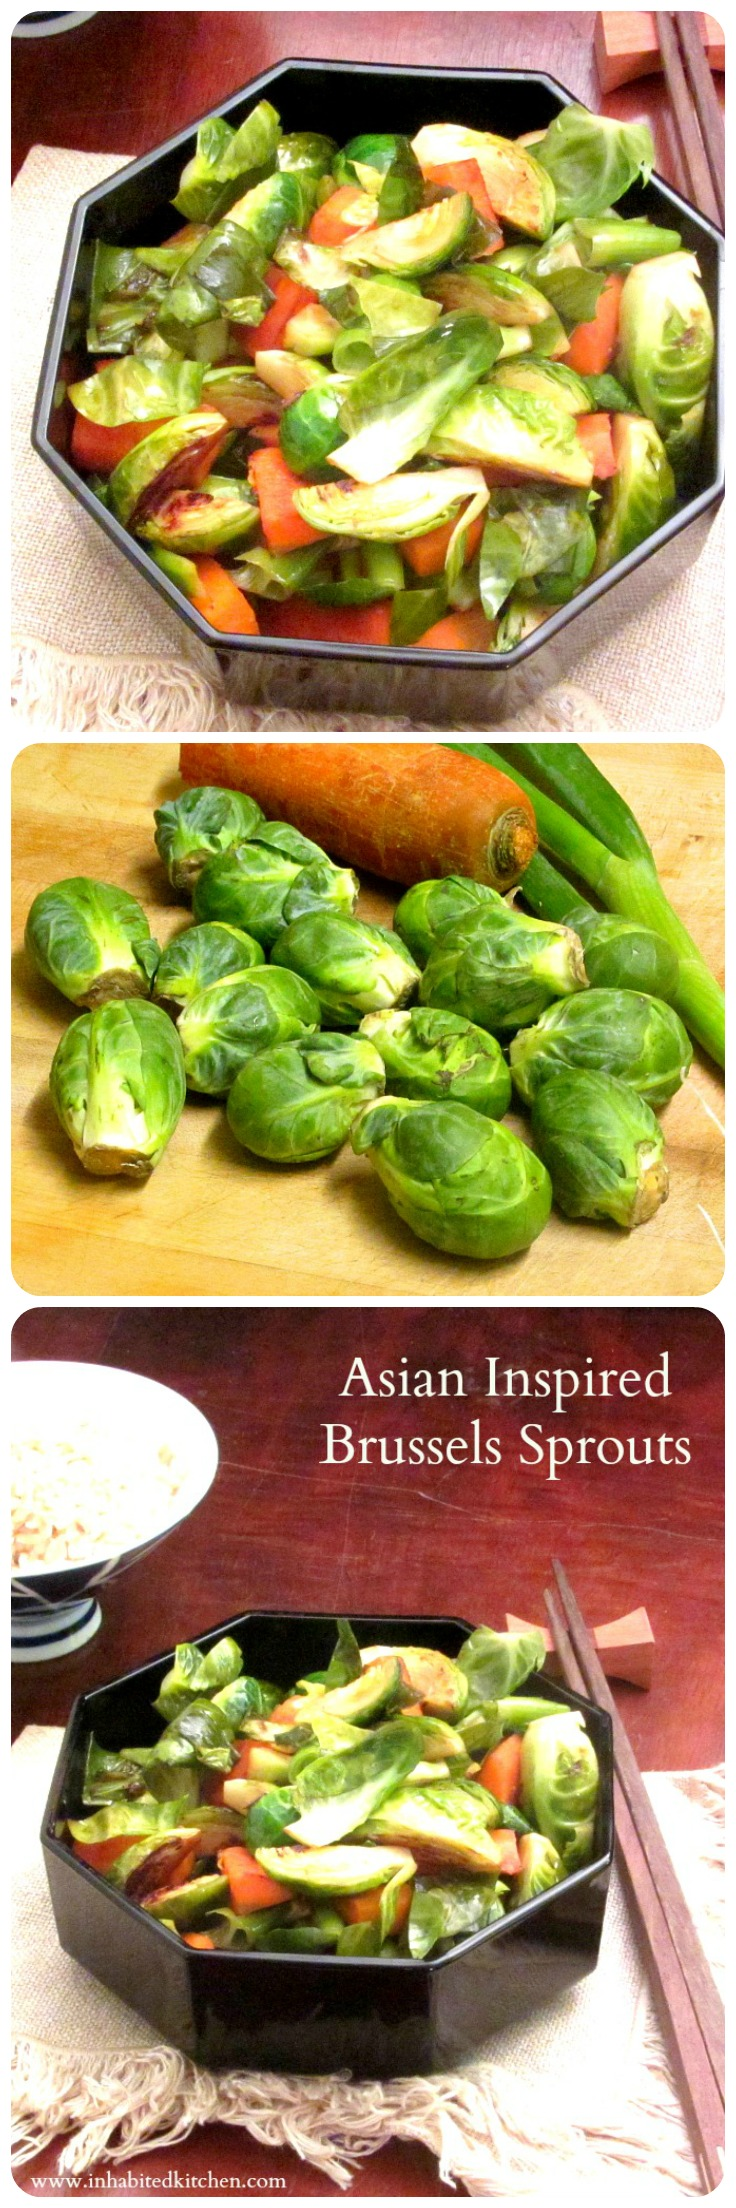 Asian Inspired Brussels Sprouts - Crisp vegetables with a subtle seasoning elevate this classic Fall vegetable to the center of a meal.